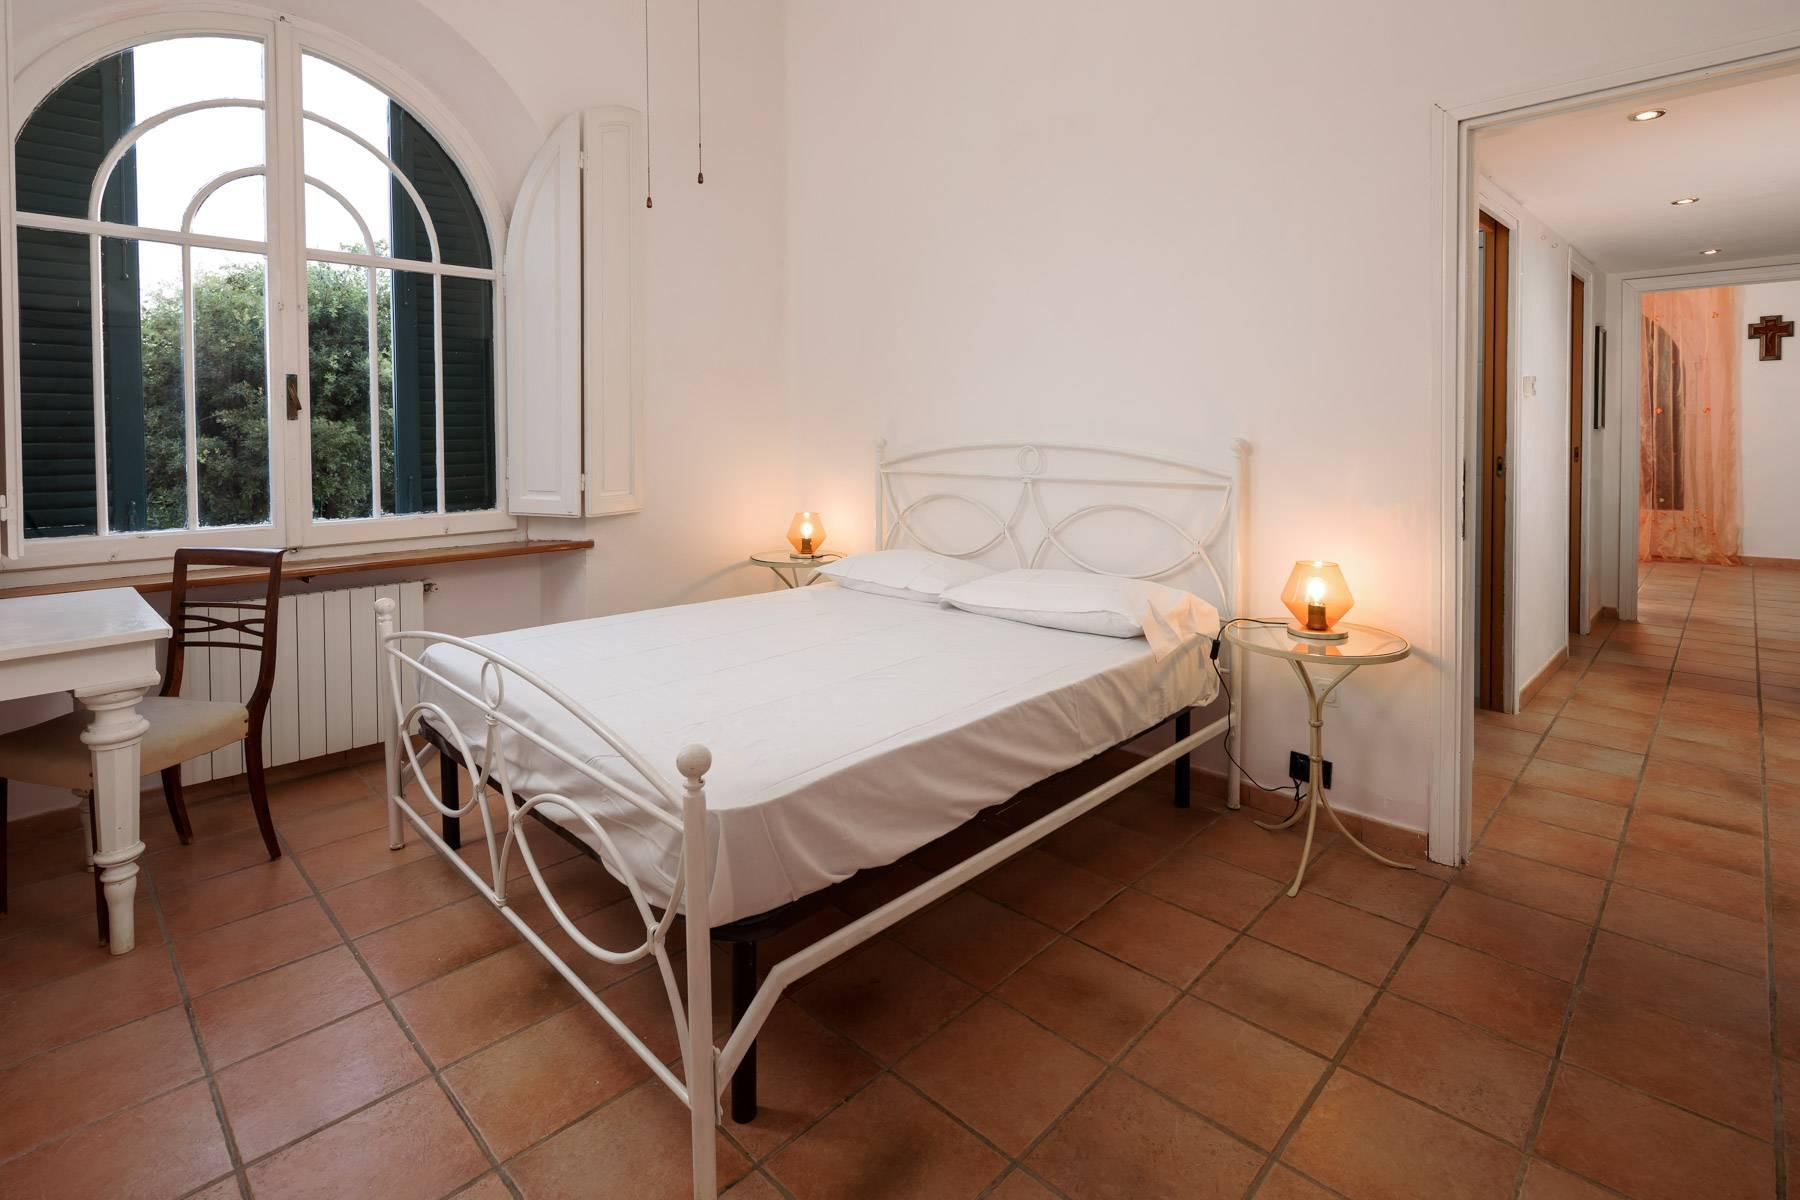 Apartment with private garden and access to the sea in a historic villa - 25